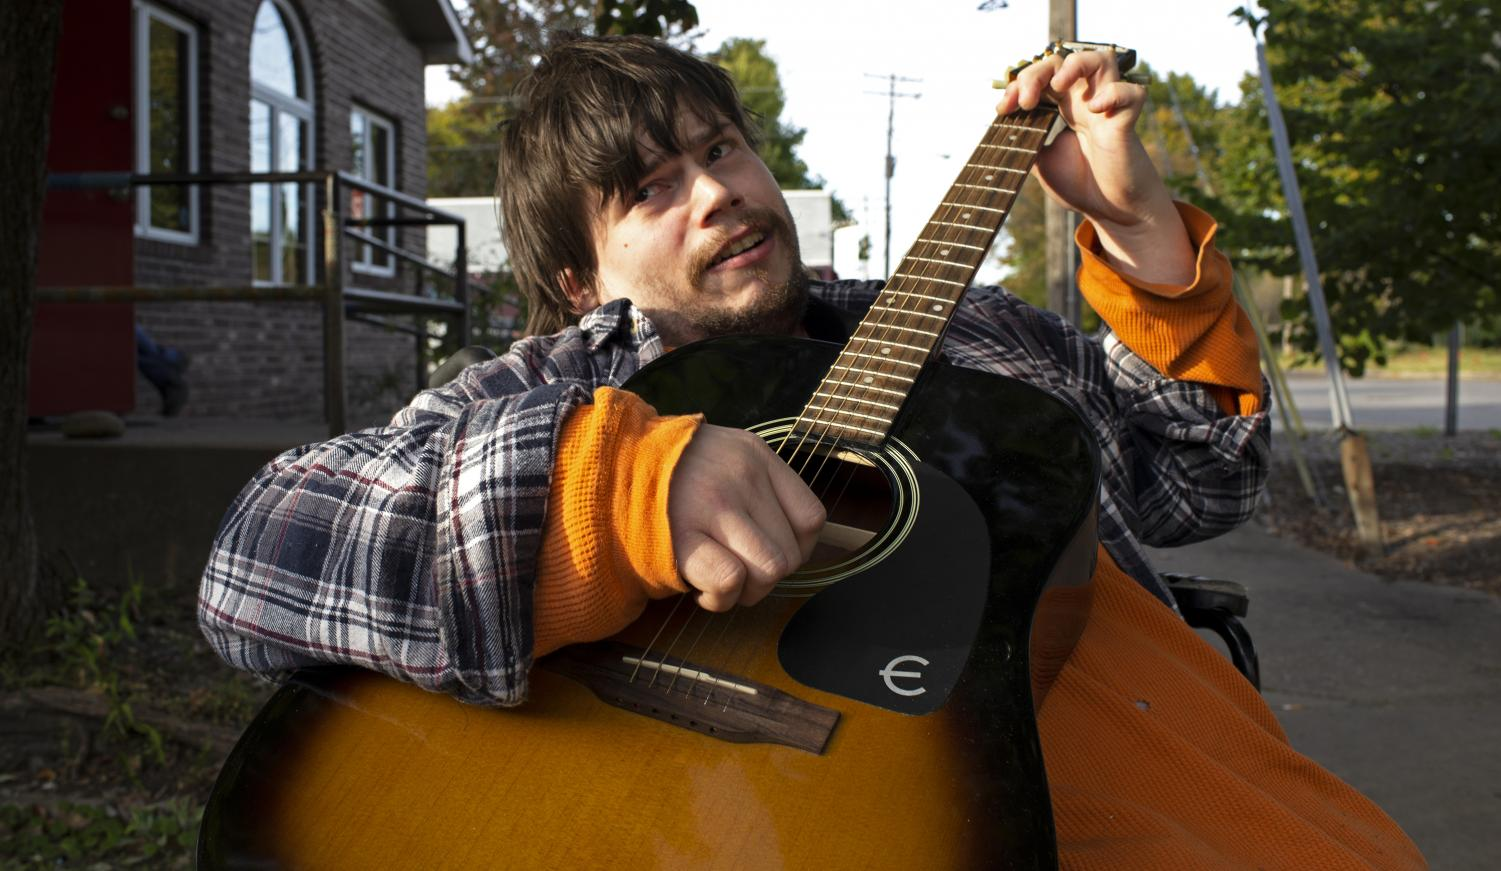 Joey Odum, 29, of Marion sings and strums an original song outside of WDBX 91.1 FM Community Radio Station on Oct. 24, 2018.